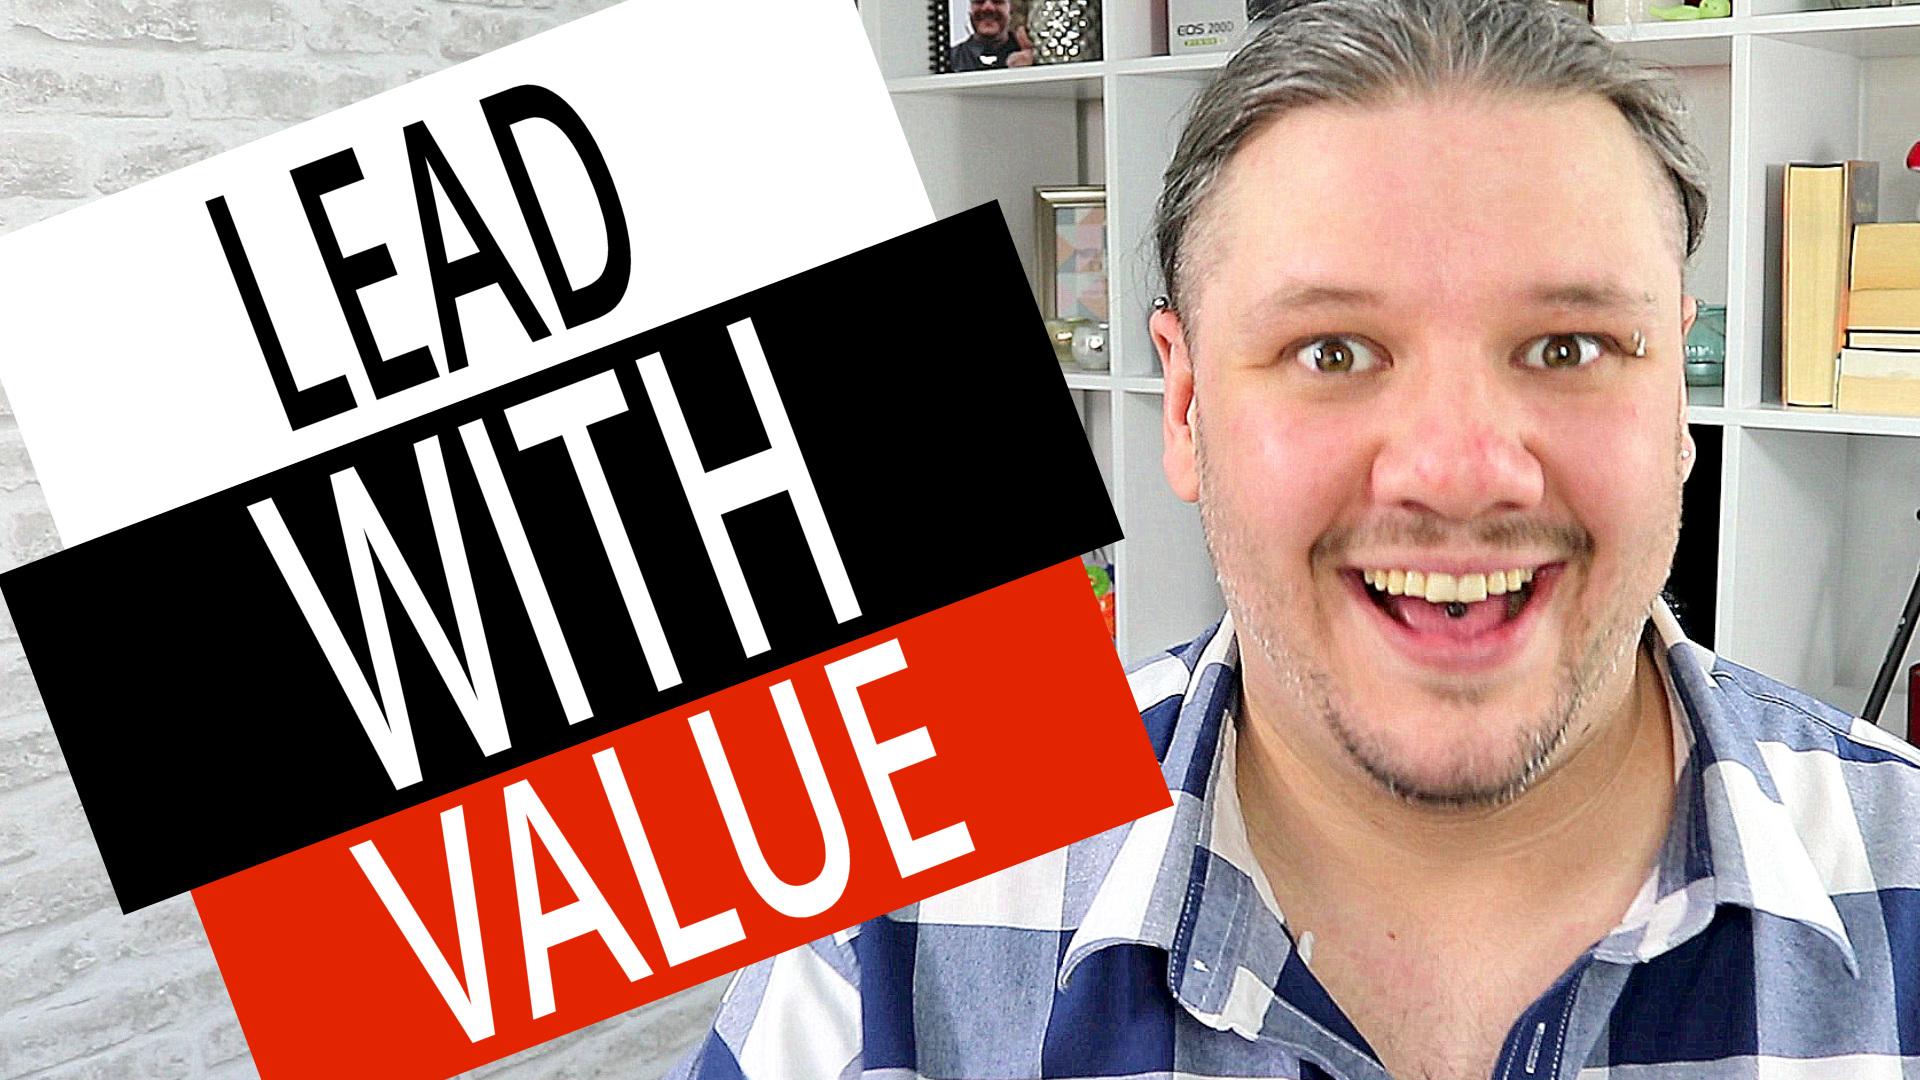 alan spicer,alanspicer,asyt,startcreating,start creating,Lead With Value,gary vaynerchuk,gary vee,lead generation,Grow on YouTube,how to grow on youtube,grow your youtube channel,value,value proposition,how to grow on youtube 2019